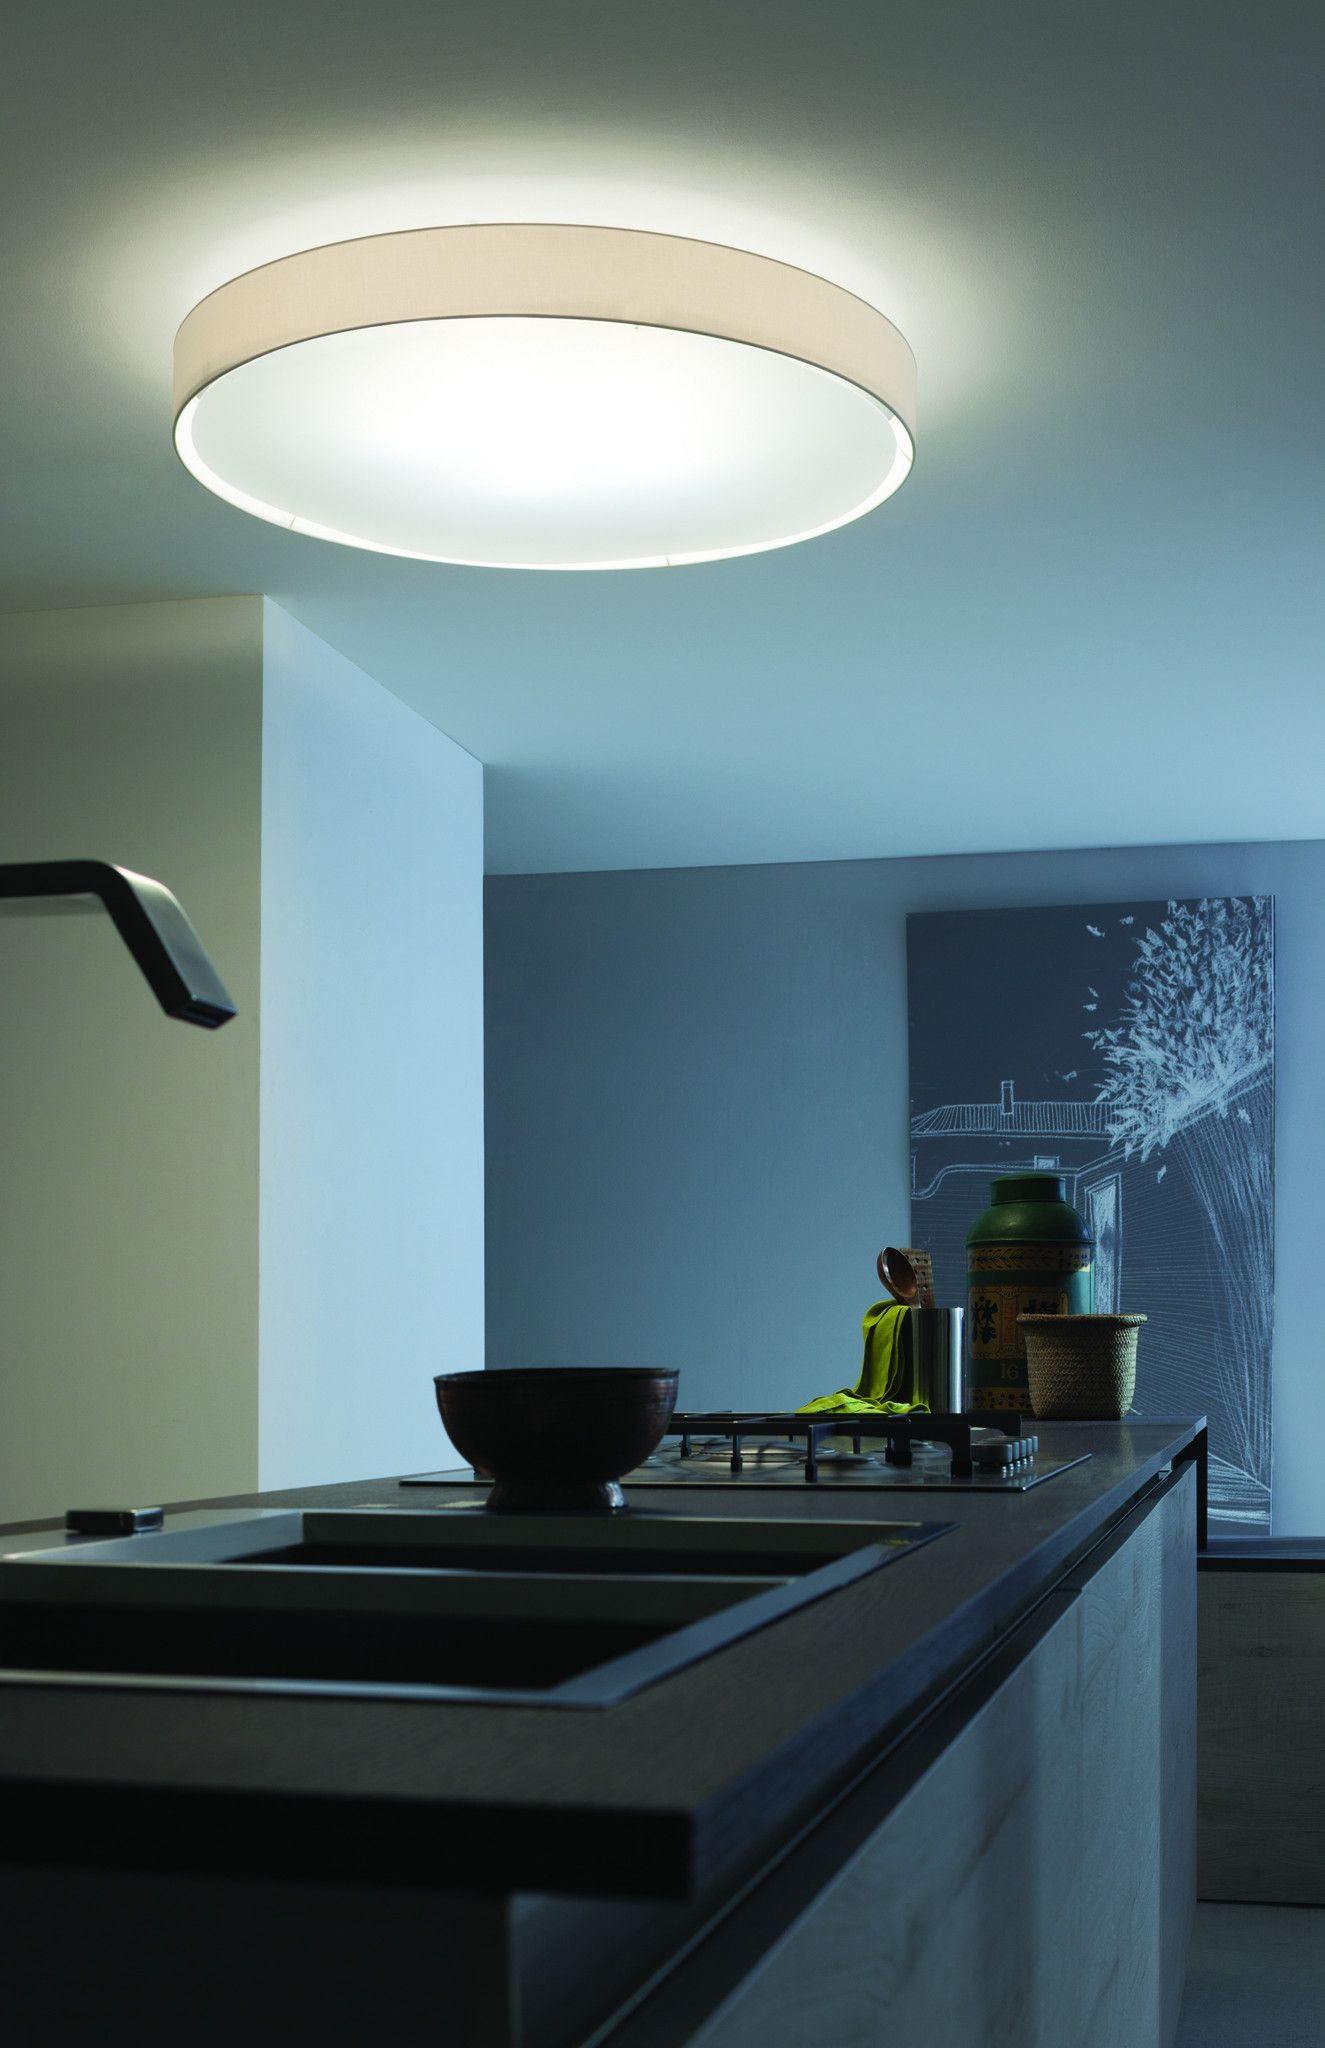 LOVE LOVE LOVE this Lucente Mirya Ceiling light for our kitchen ...